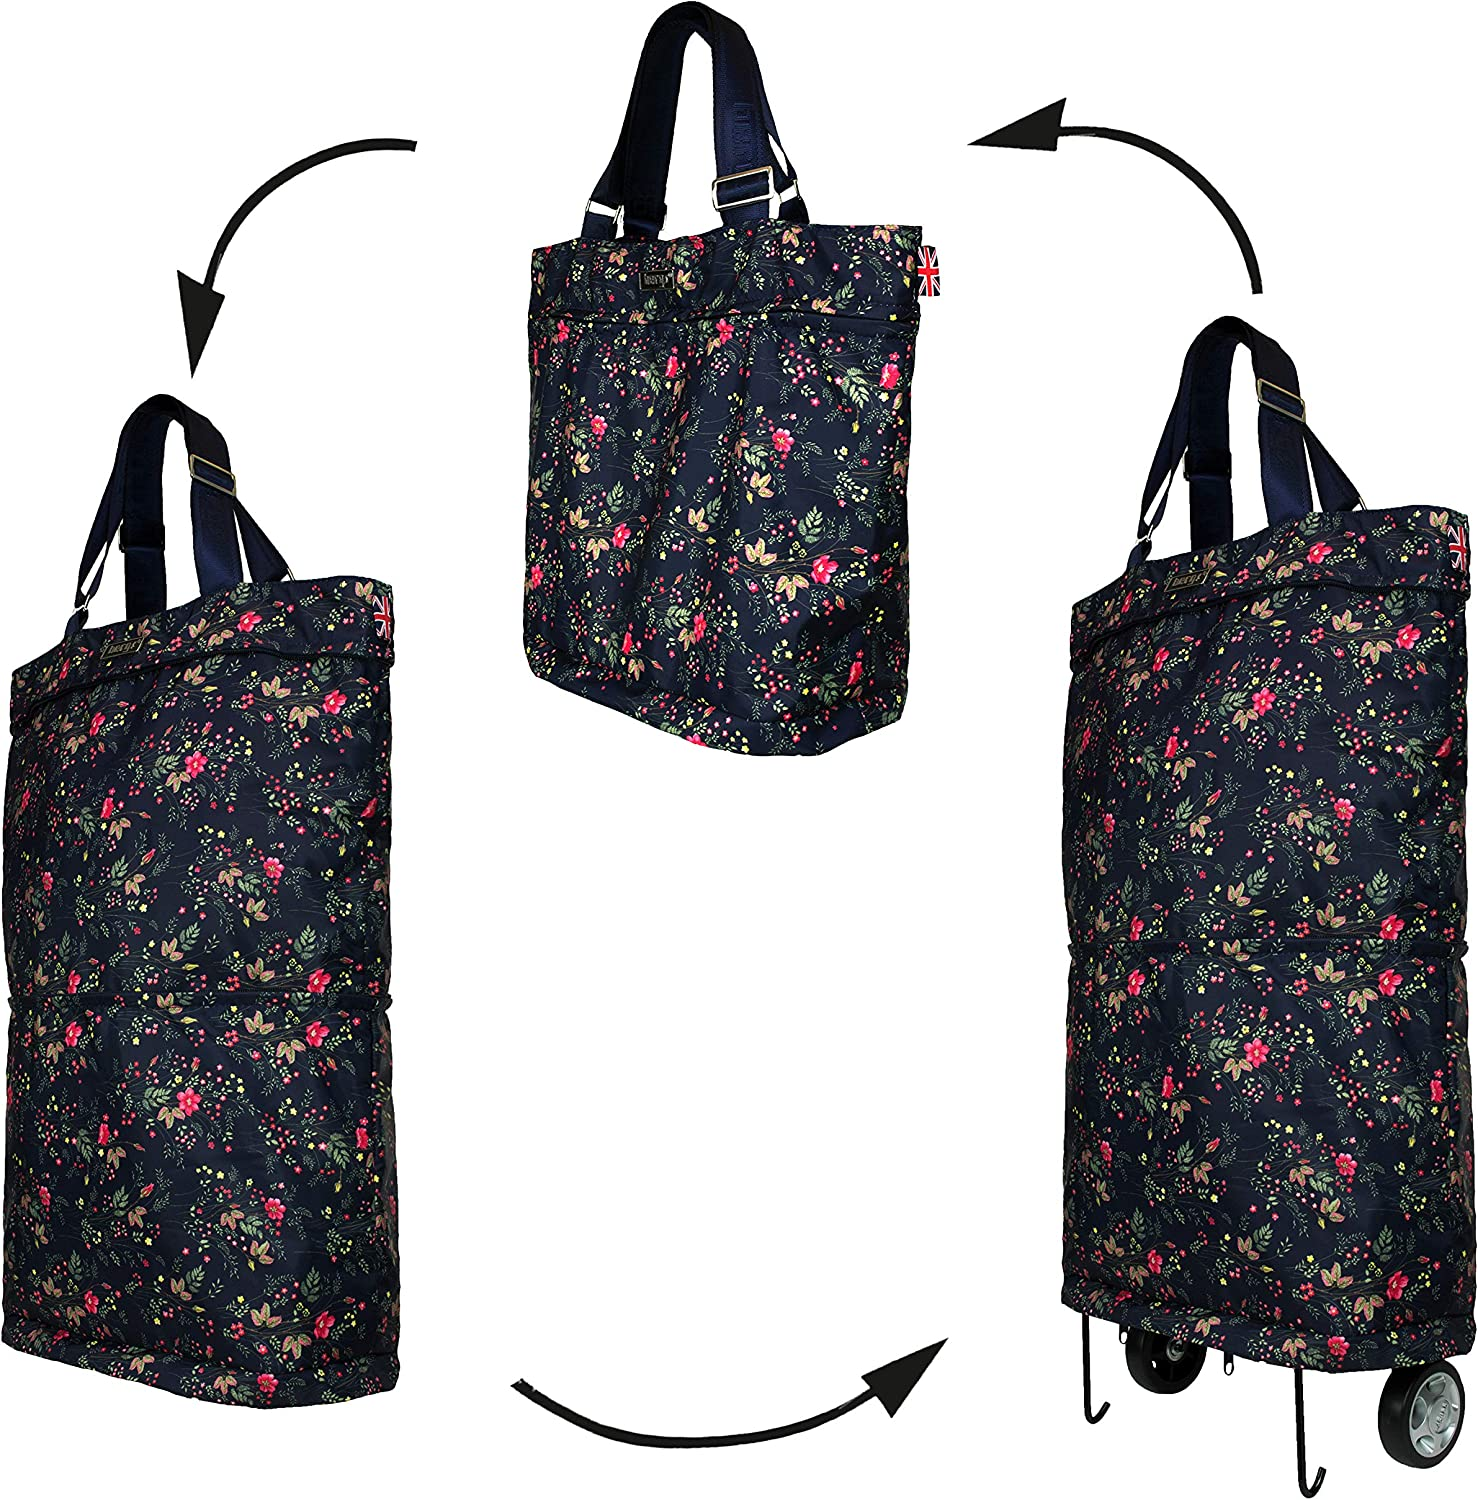 Cabin Size Bergs 3in1 Multifunctional Bag Navy with Dog Roses Tote Handbag//Shopper//Wheelie